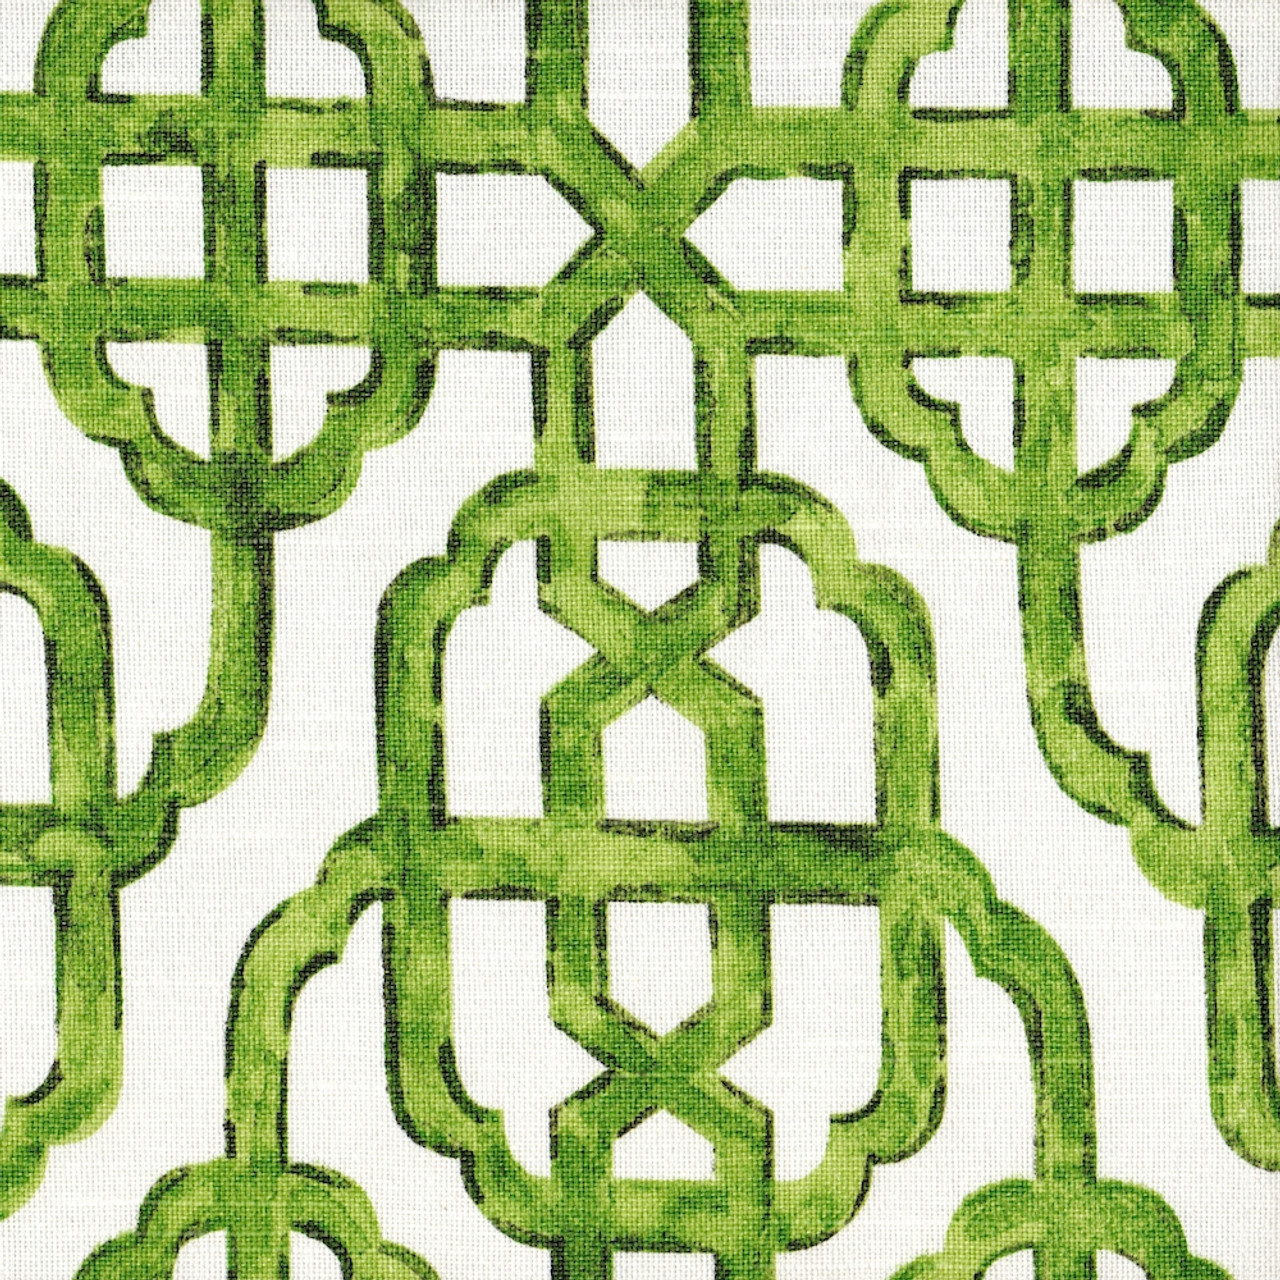 Shower Curtain In Imperial Jade Green Lattice